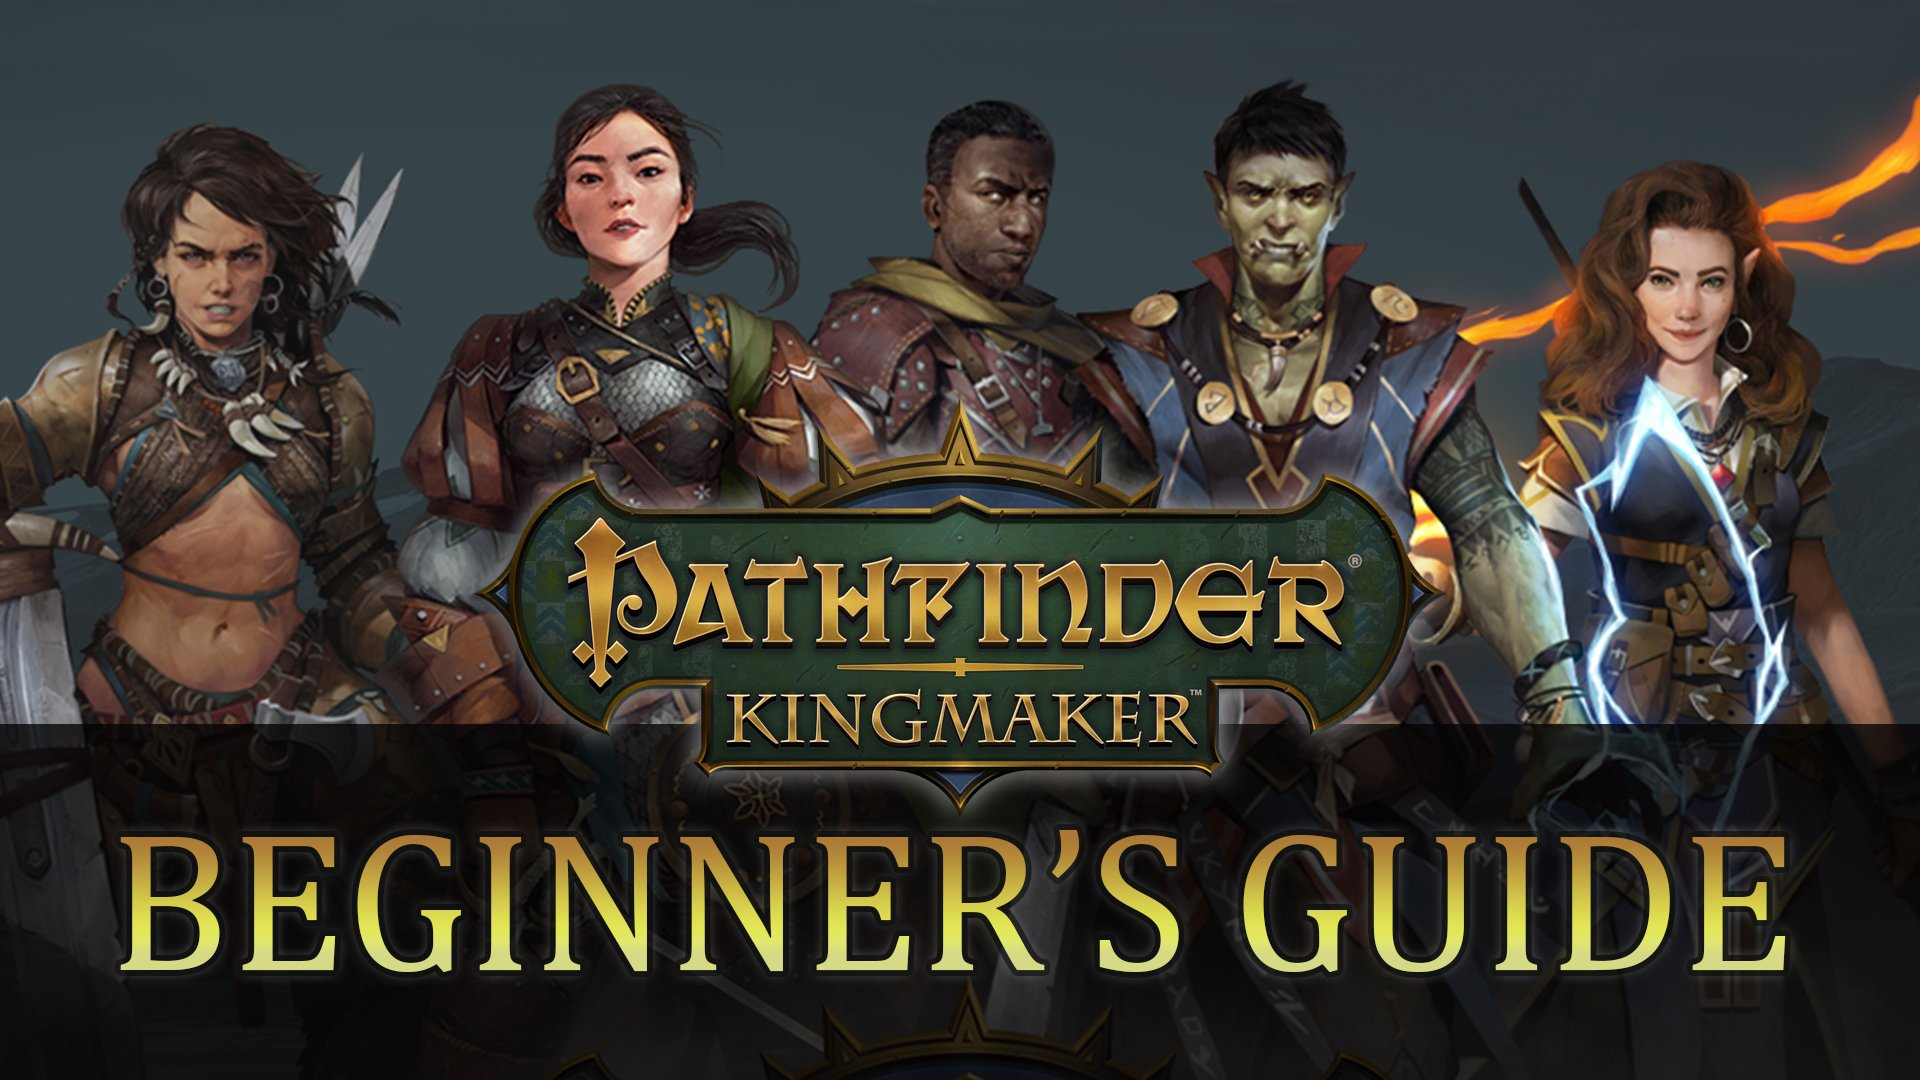 Pathfinder Kingmaker - Beginner's Guide | Fextralife